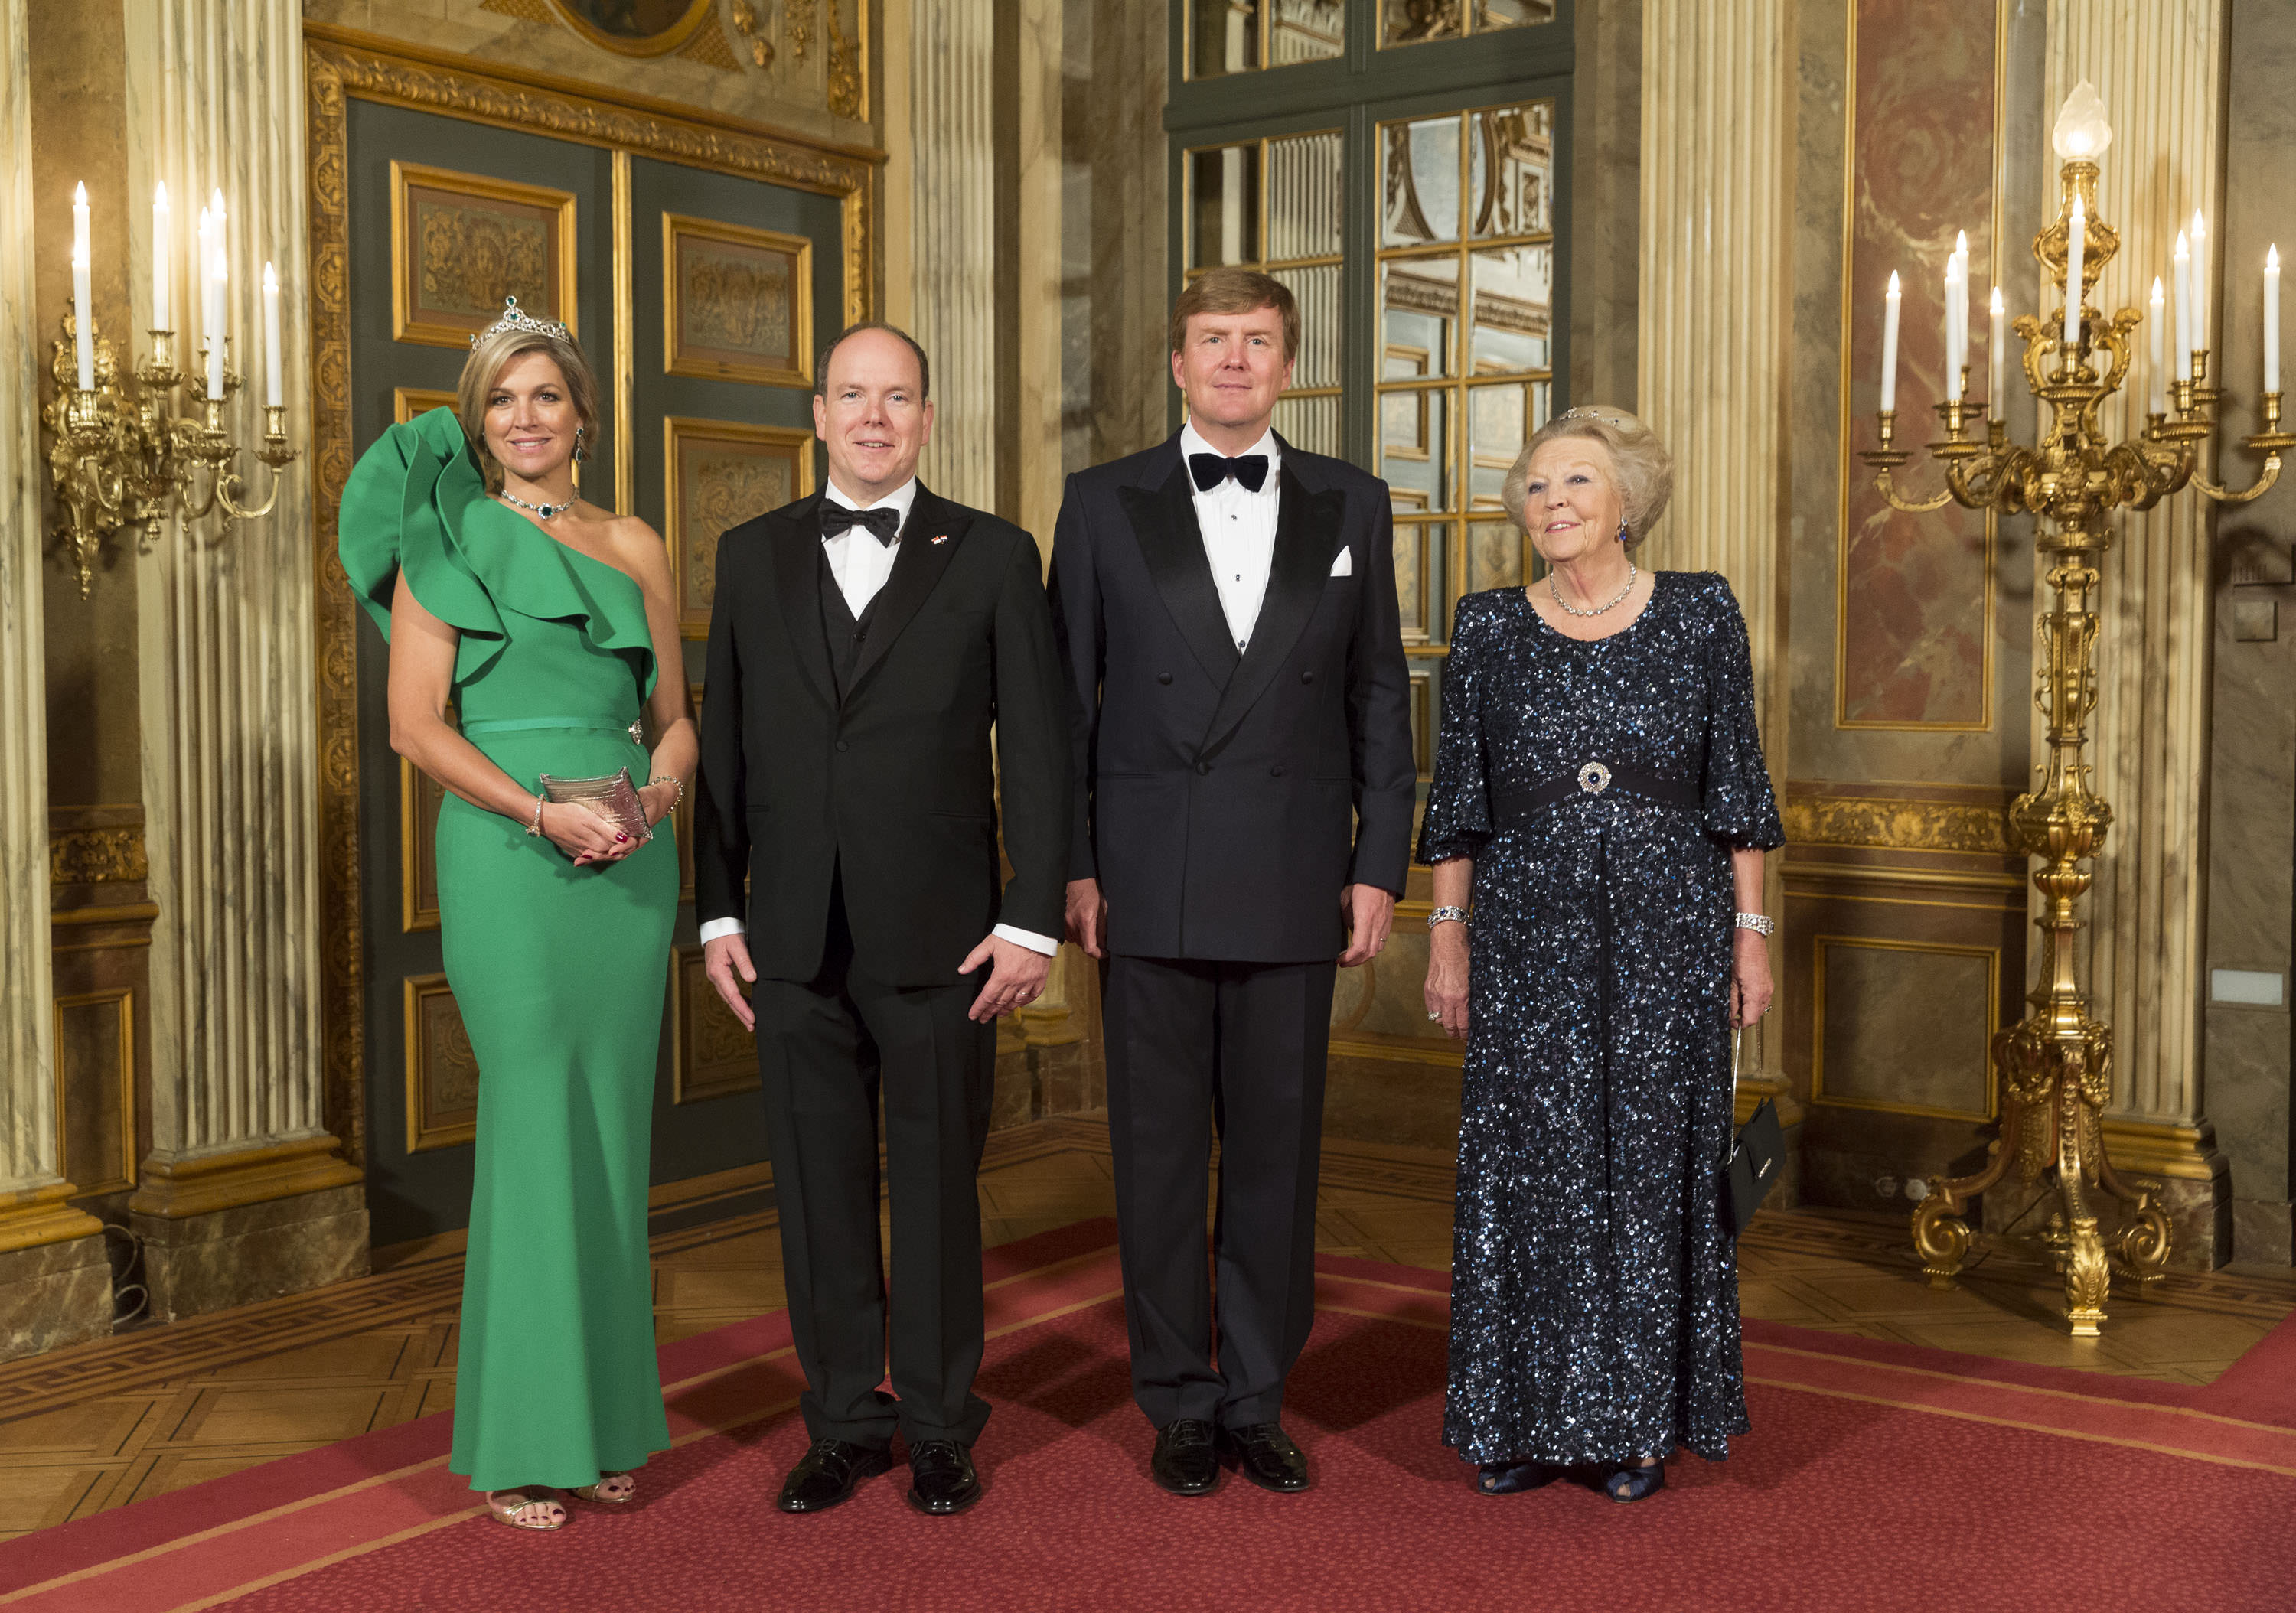 queen maxima green dress prince albert king willem-alexander princess beatrix prince albert monaco official visit